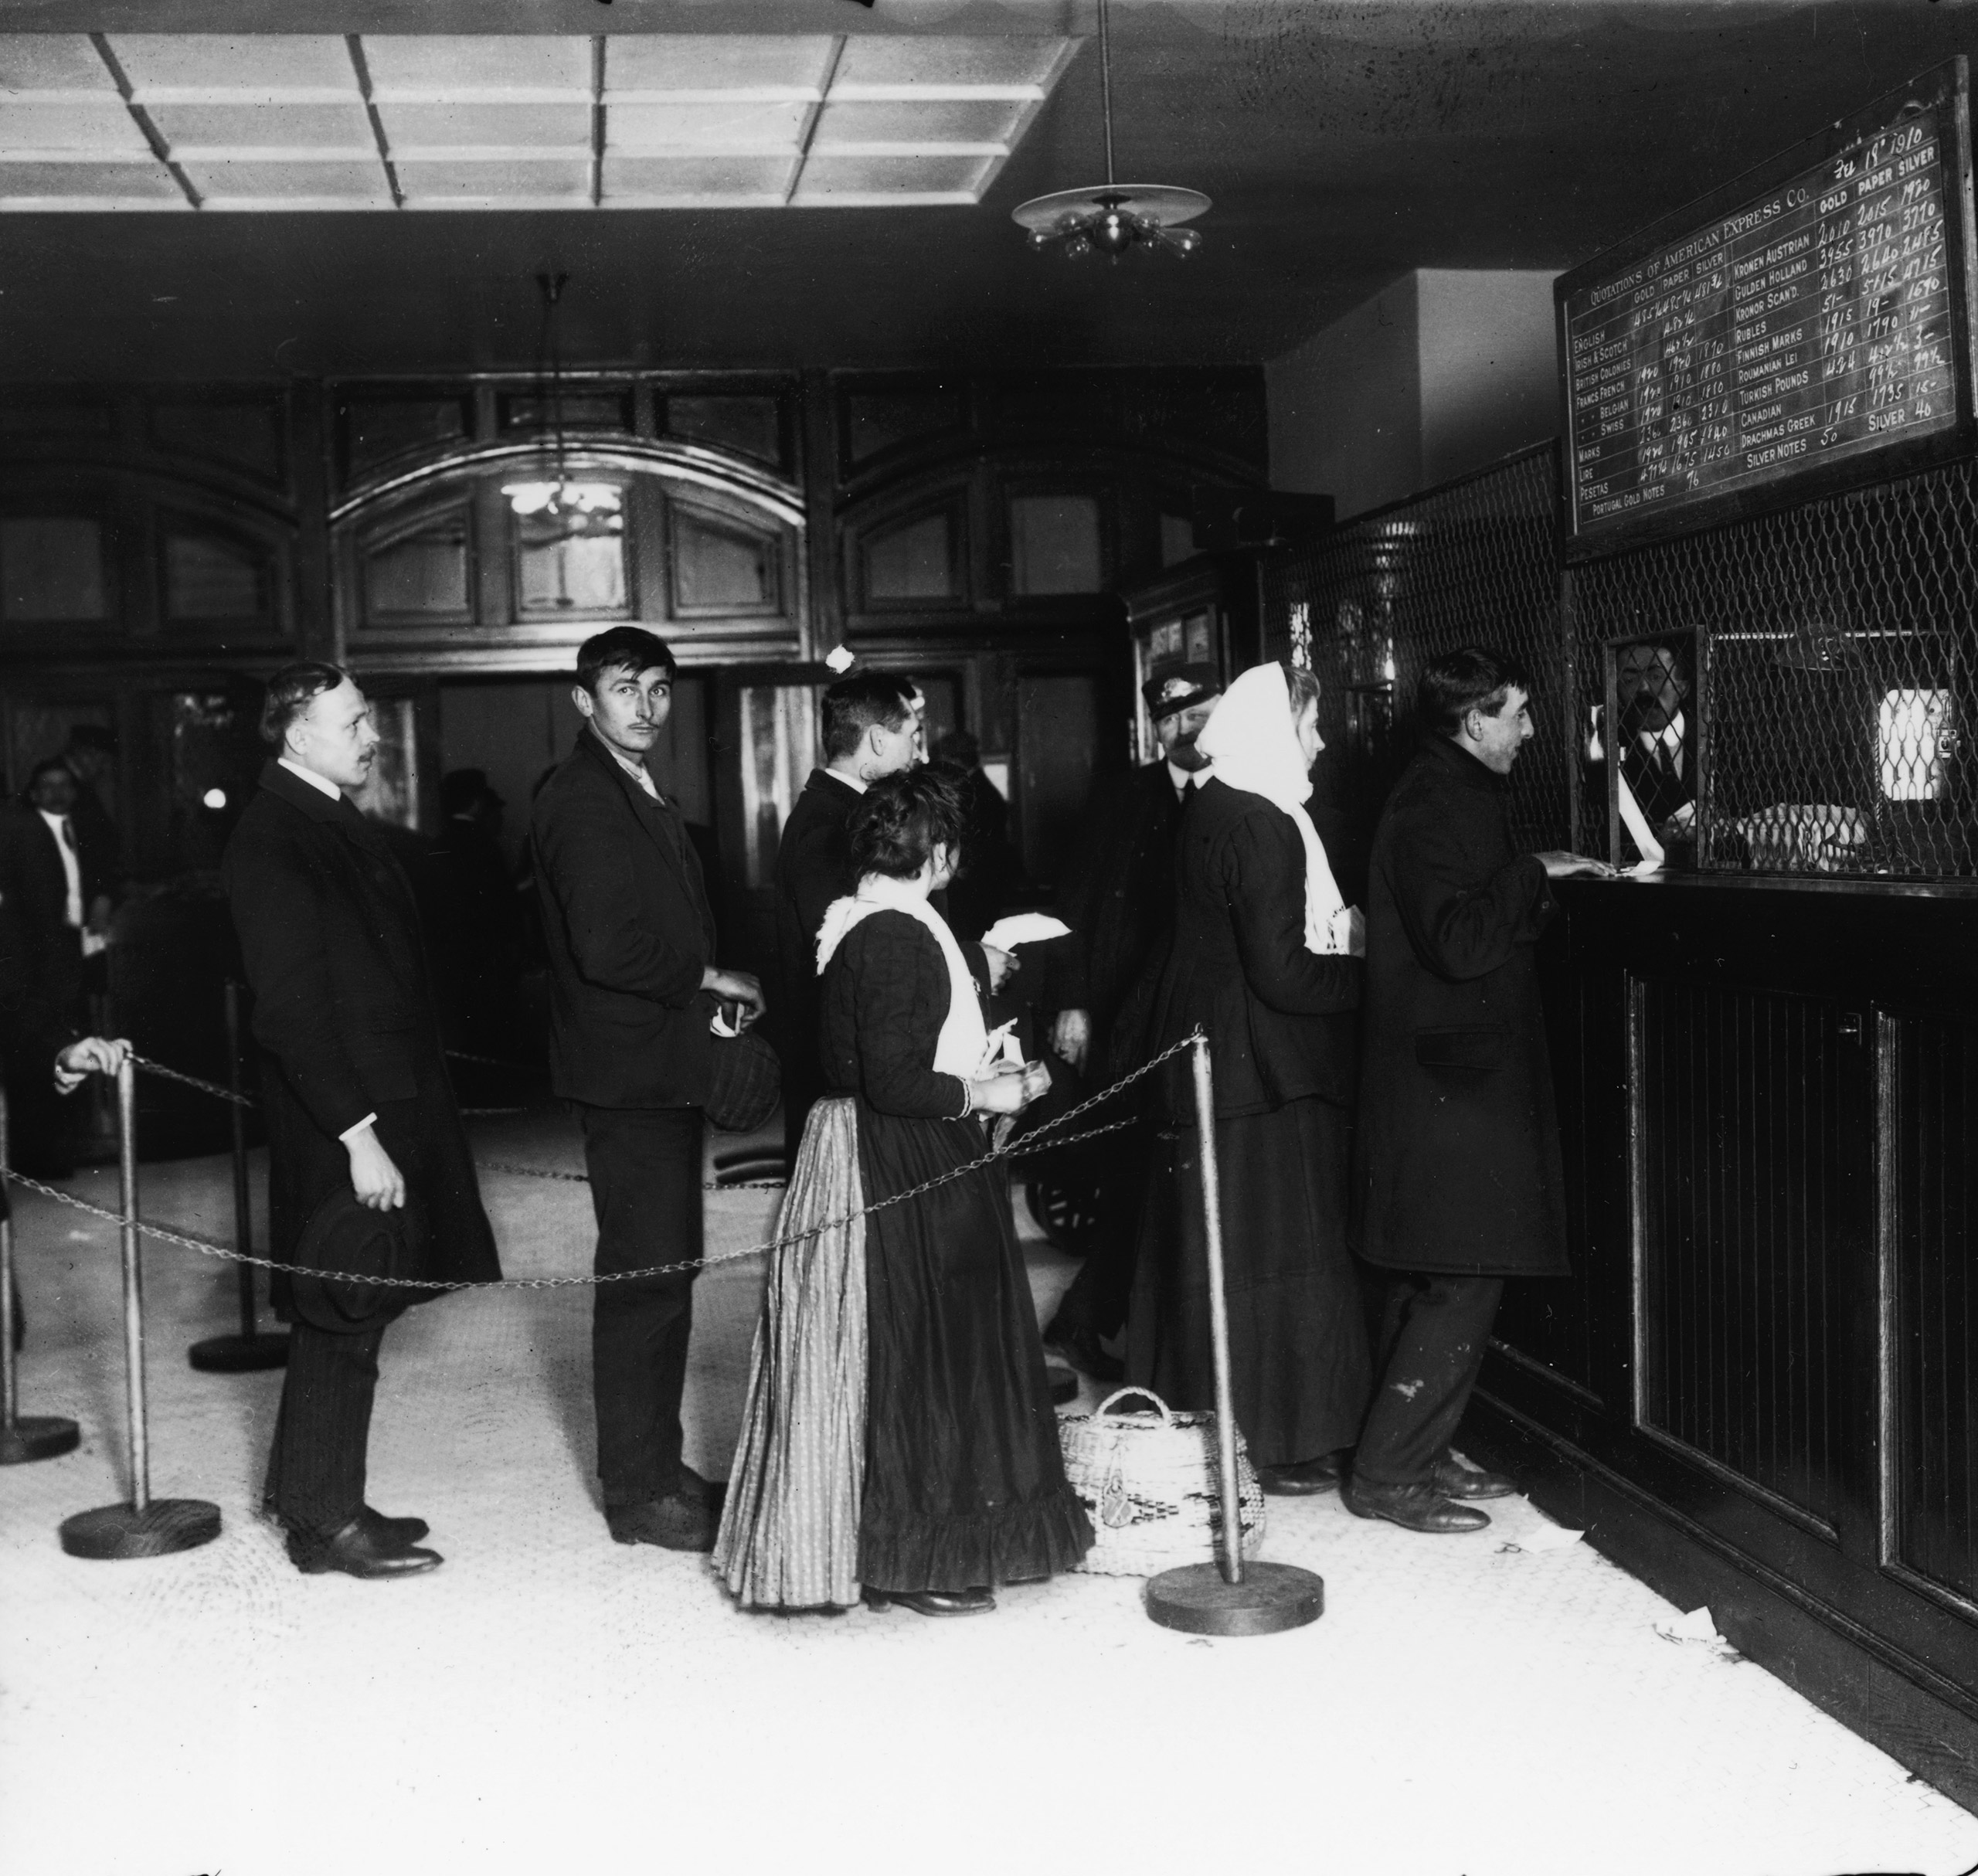 Customers wait in line at a teller's window at a bank on Ellis Island, New York, Feb. 18, 1910.